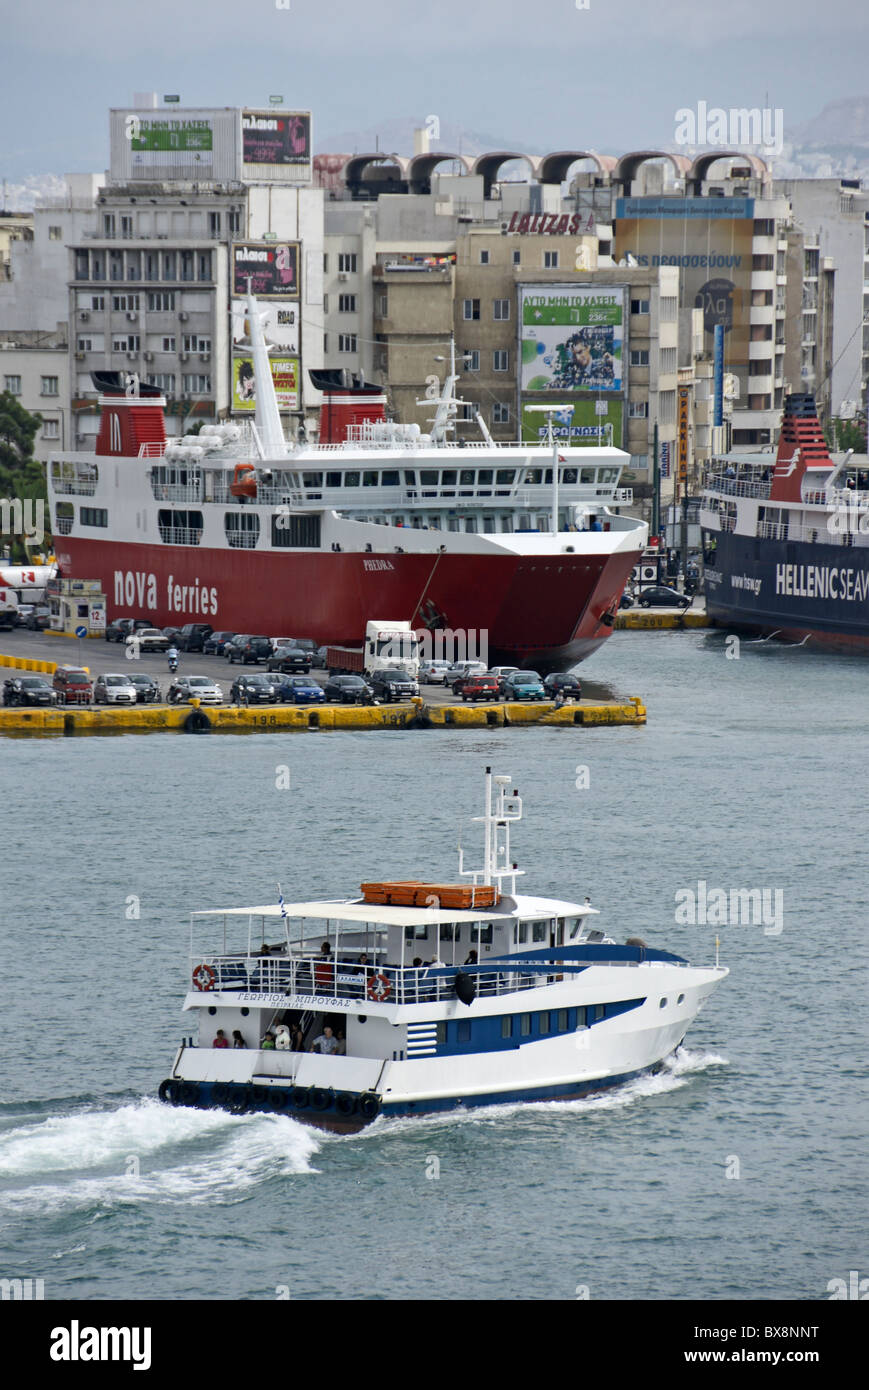 Nova Ferries car and passenger ferry Phedra berthed in Piraeus harbour with harbour tour vessel cruising by Stock Photo